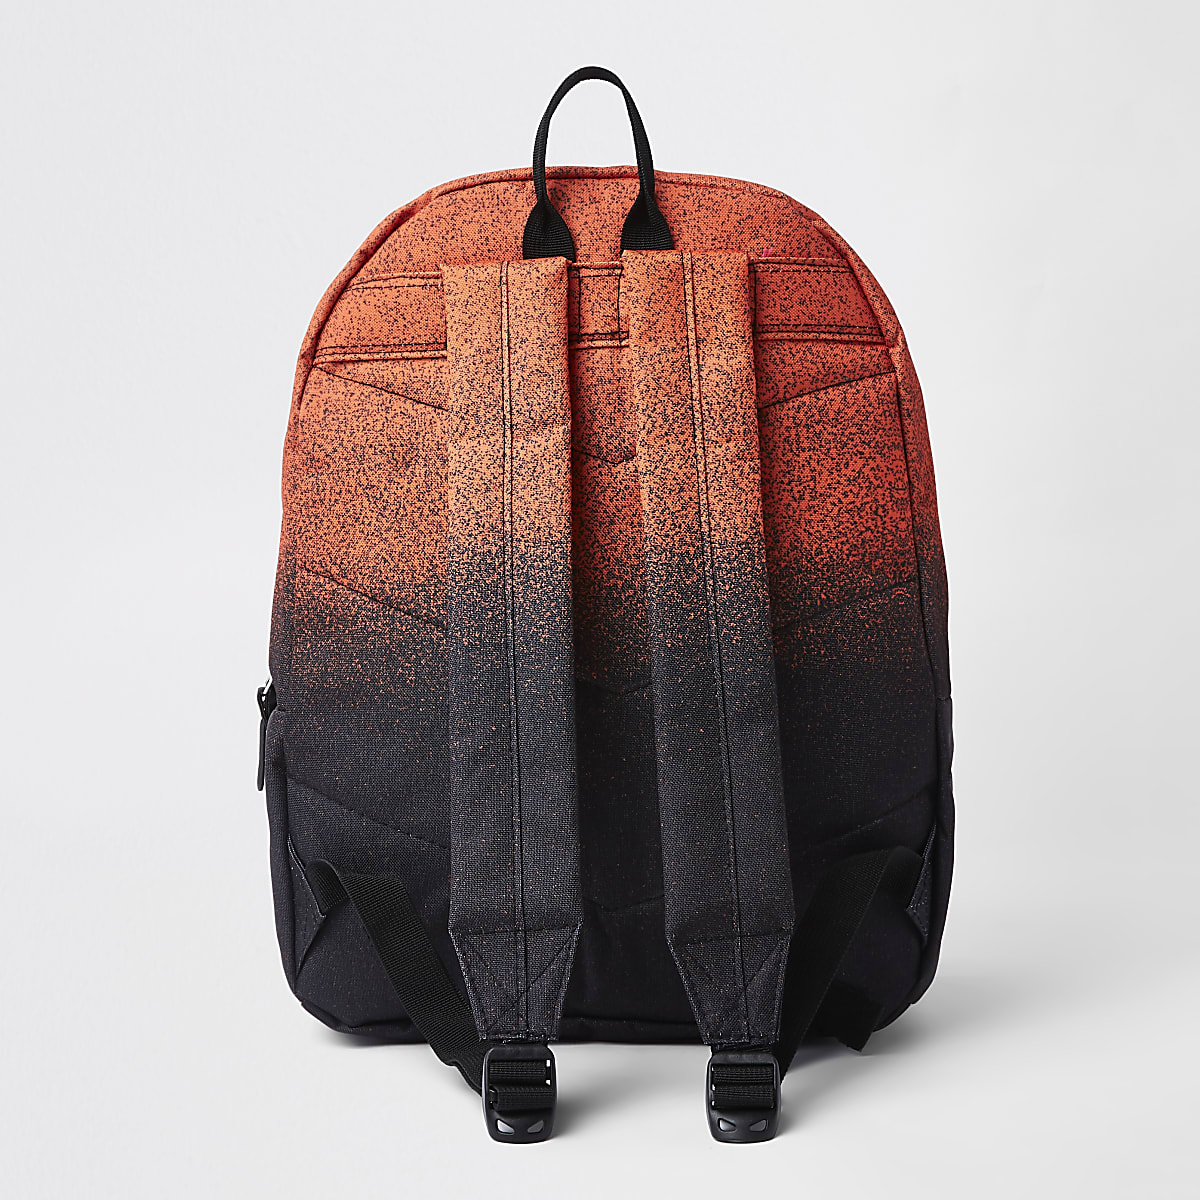 bab6a6856 Boys Hype black orange speckled backpack - Bags / Wallets ...